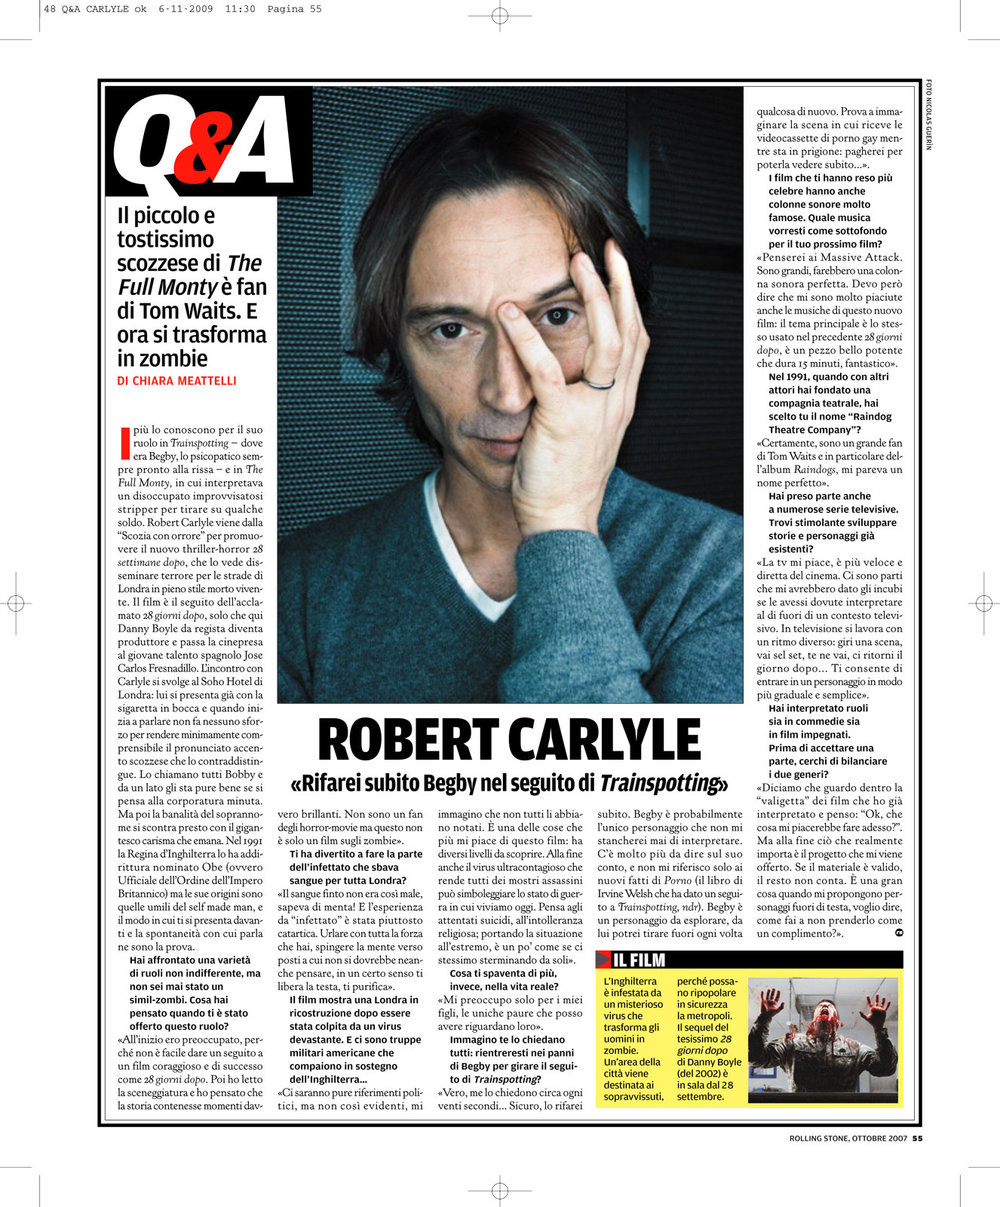 Rolling Stone: Robert Carlyle interview